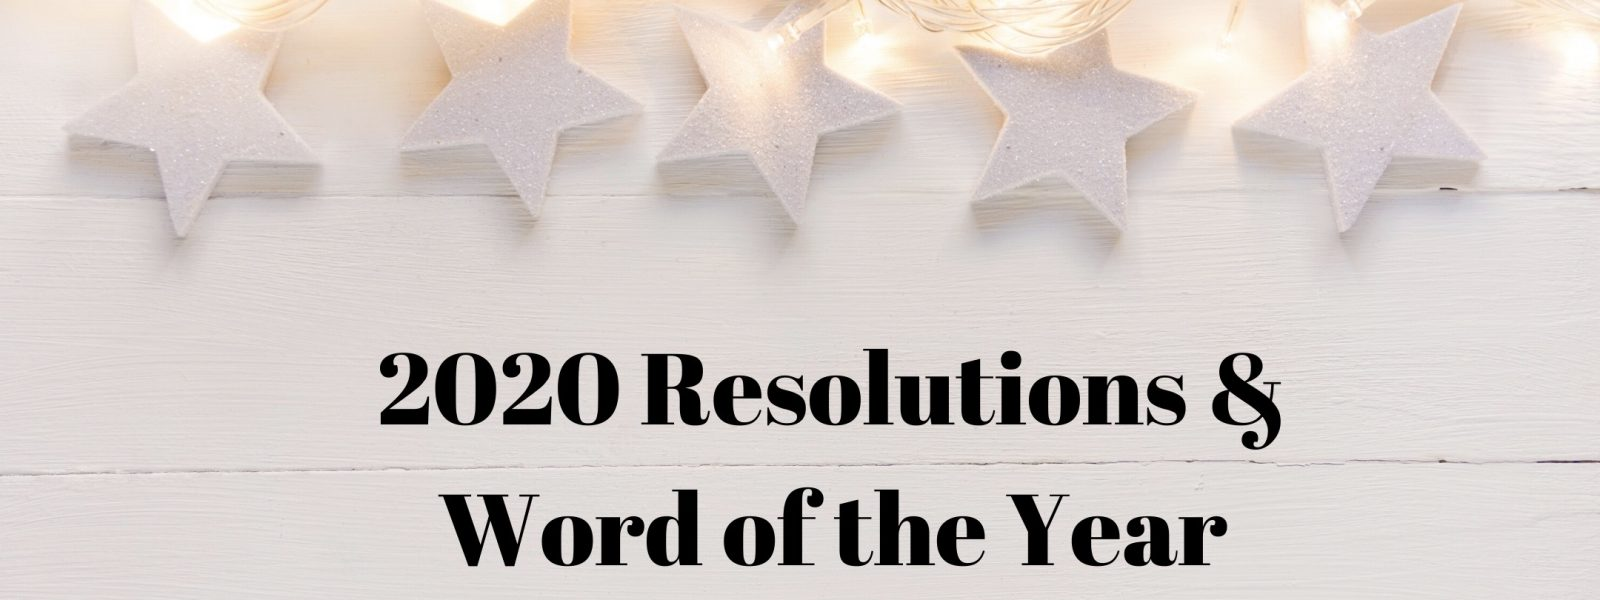 2020 Resolutions and My Word of the Year